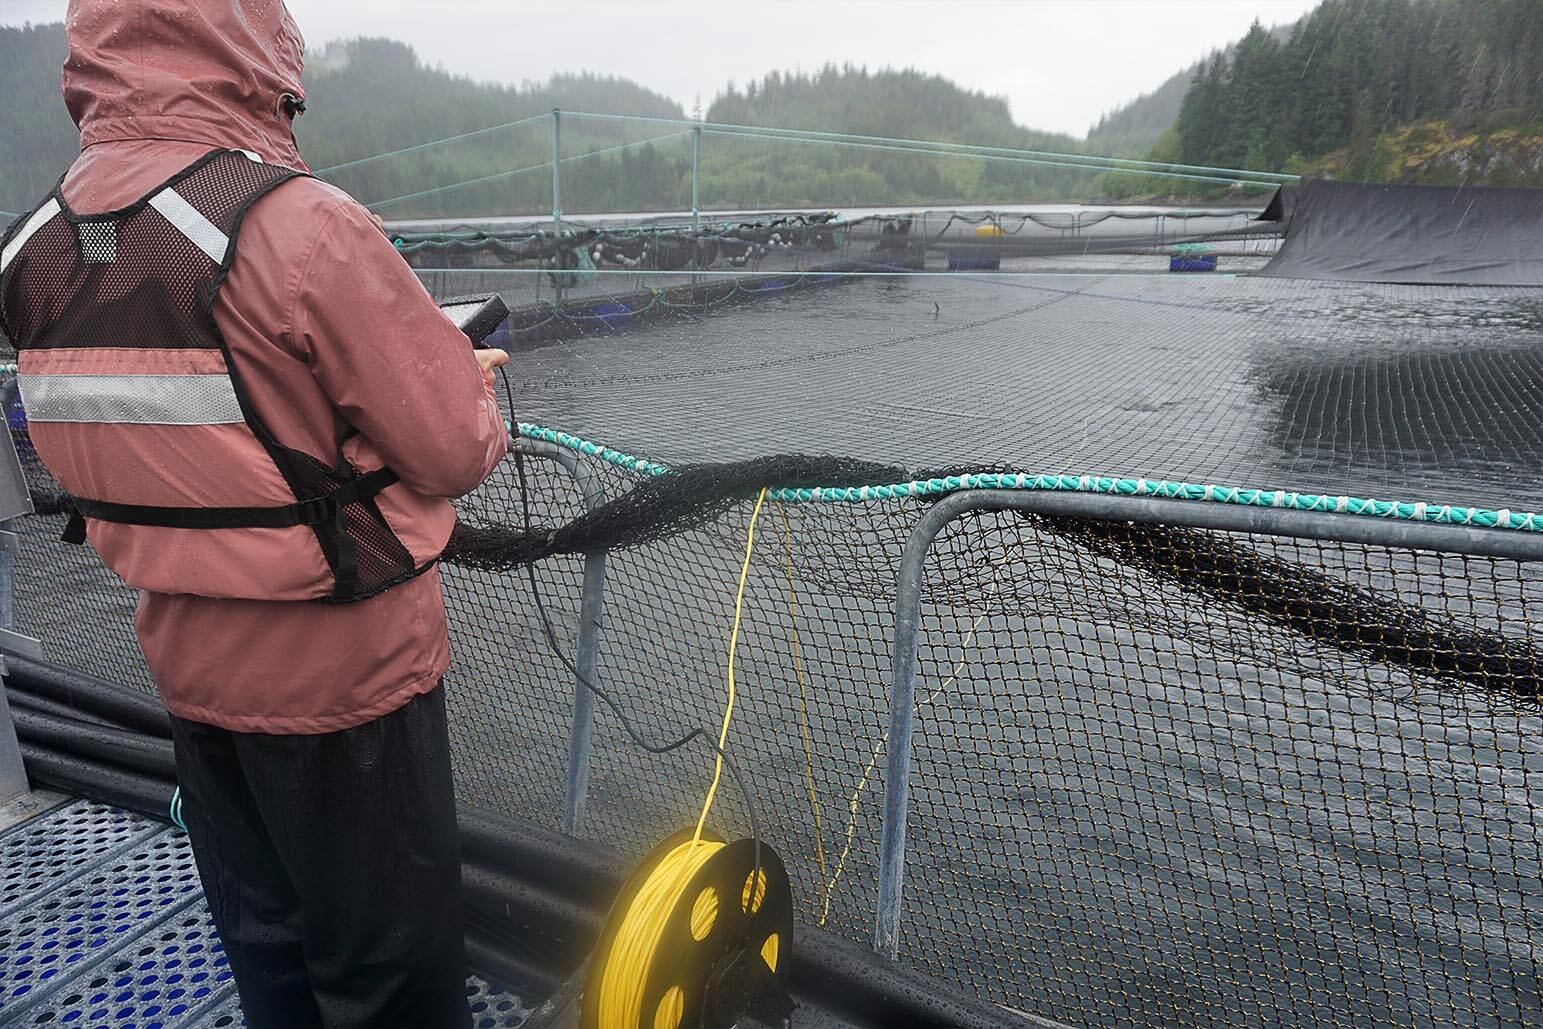 rov-regulating-aquaculture-industry.jpg